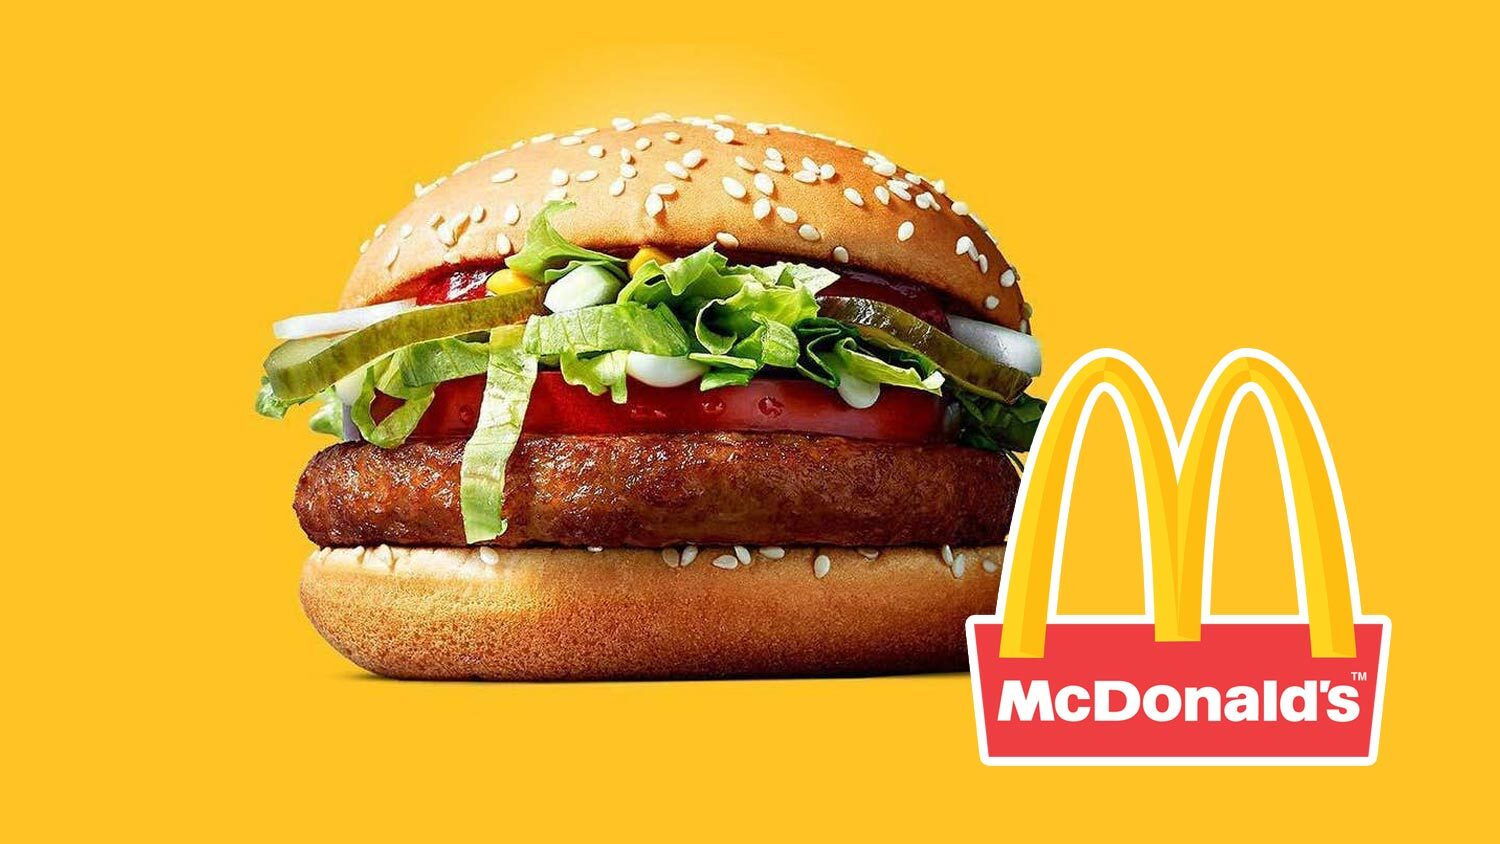 McDonald's CEO Says Vegan Options Are Coming to the U.S.